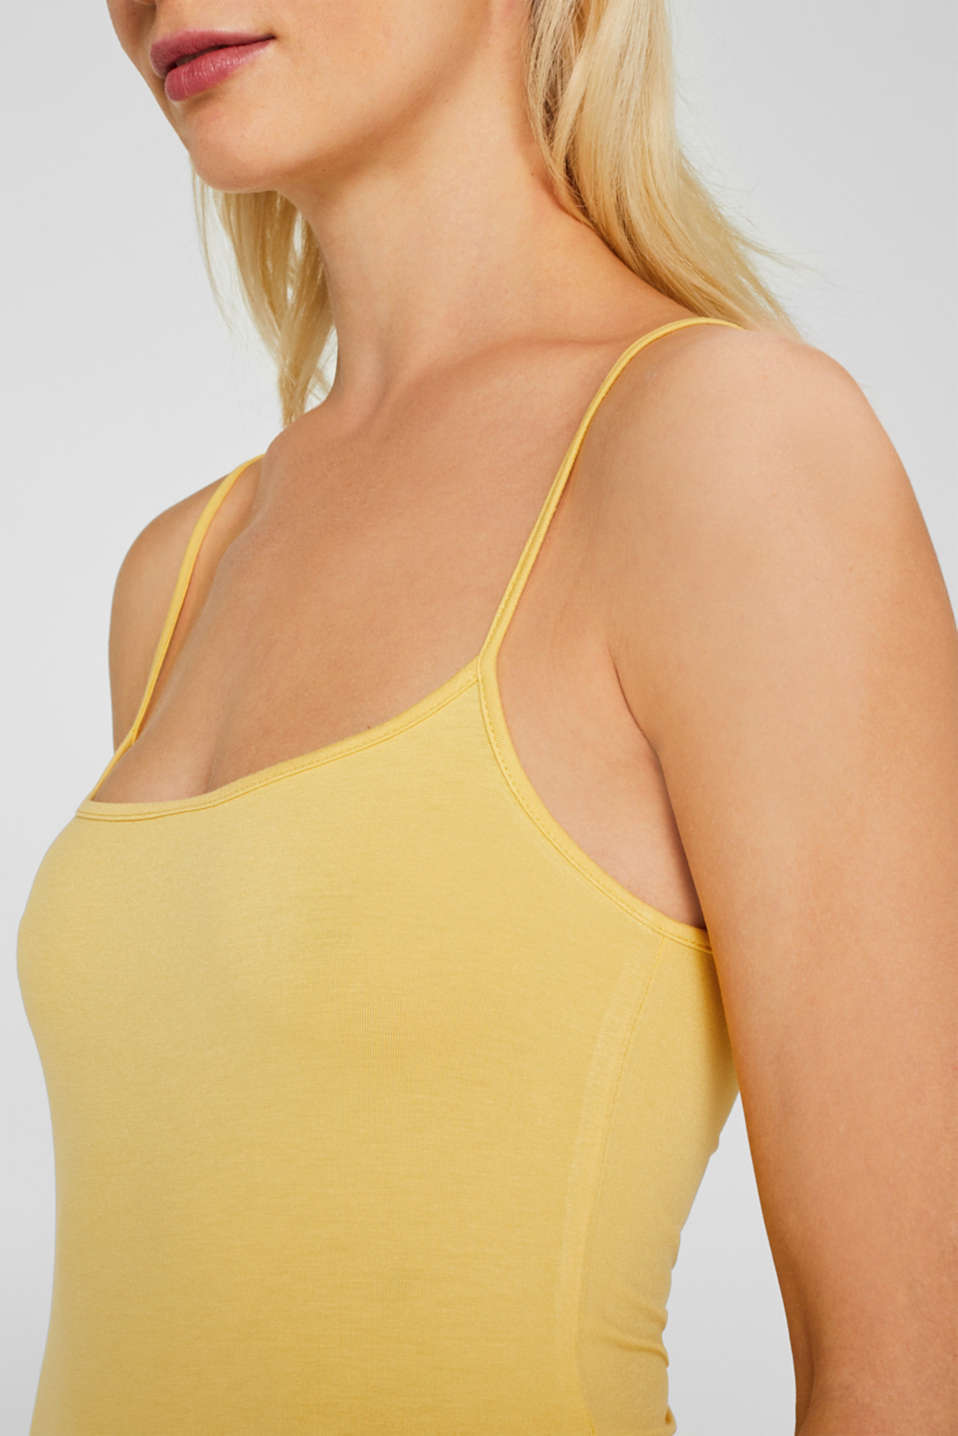 Stretch top with adjustable spaghetti straps, YELLOW 4, detail image number 2